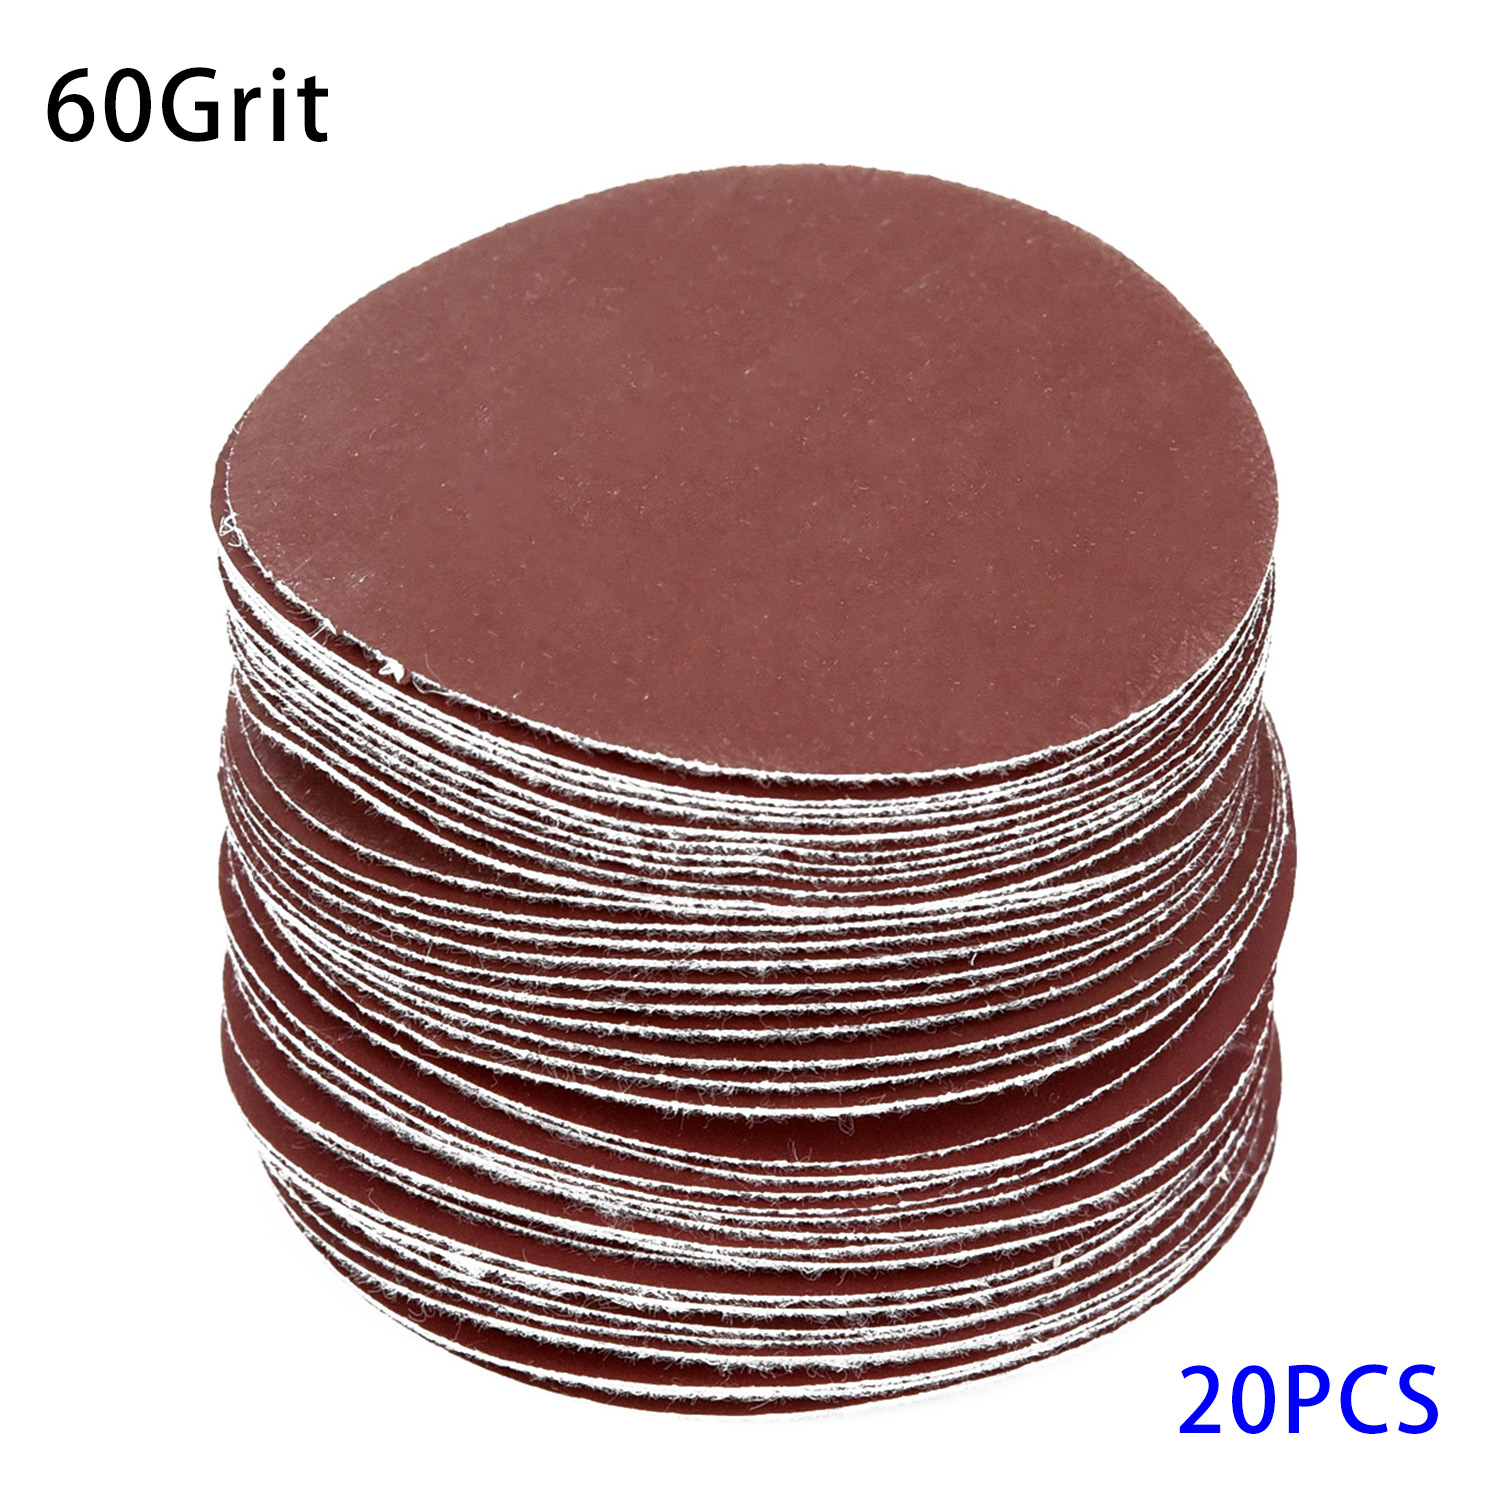 20x 75mm 3inch Assorted 40~3000Grit Sander Discs Sanding Polishing Pad Sandpaper